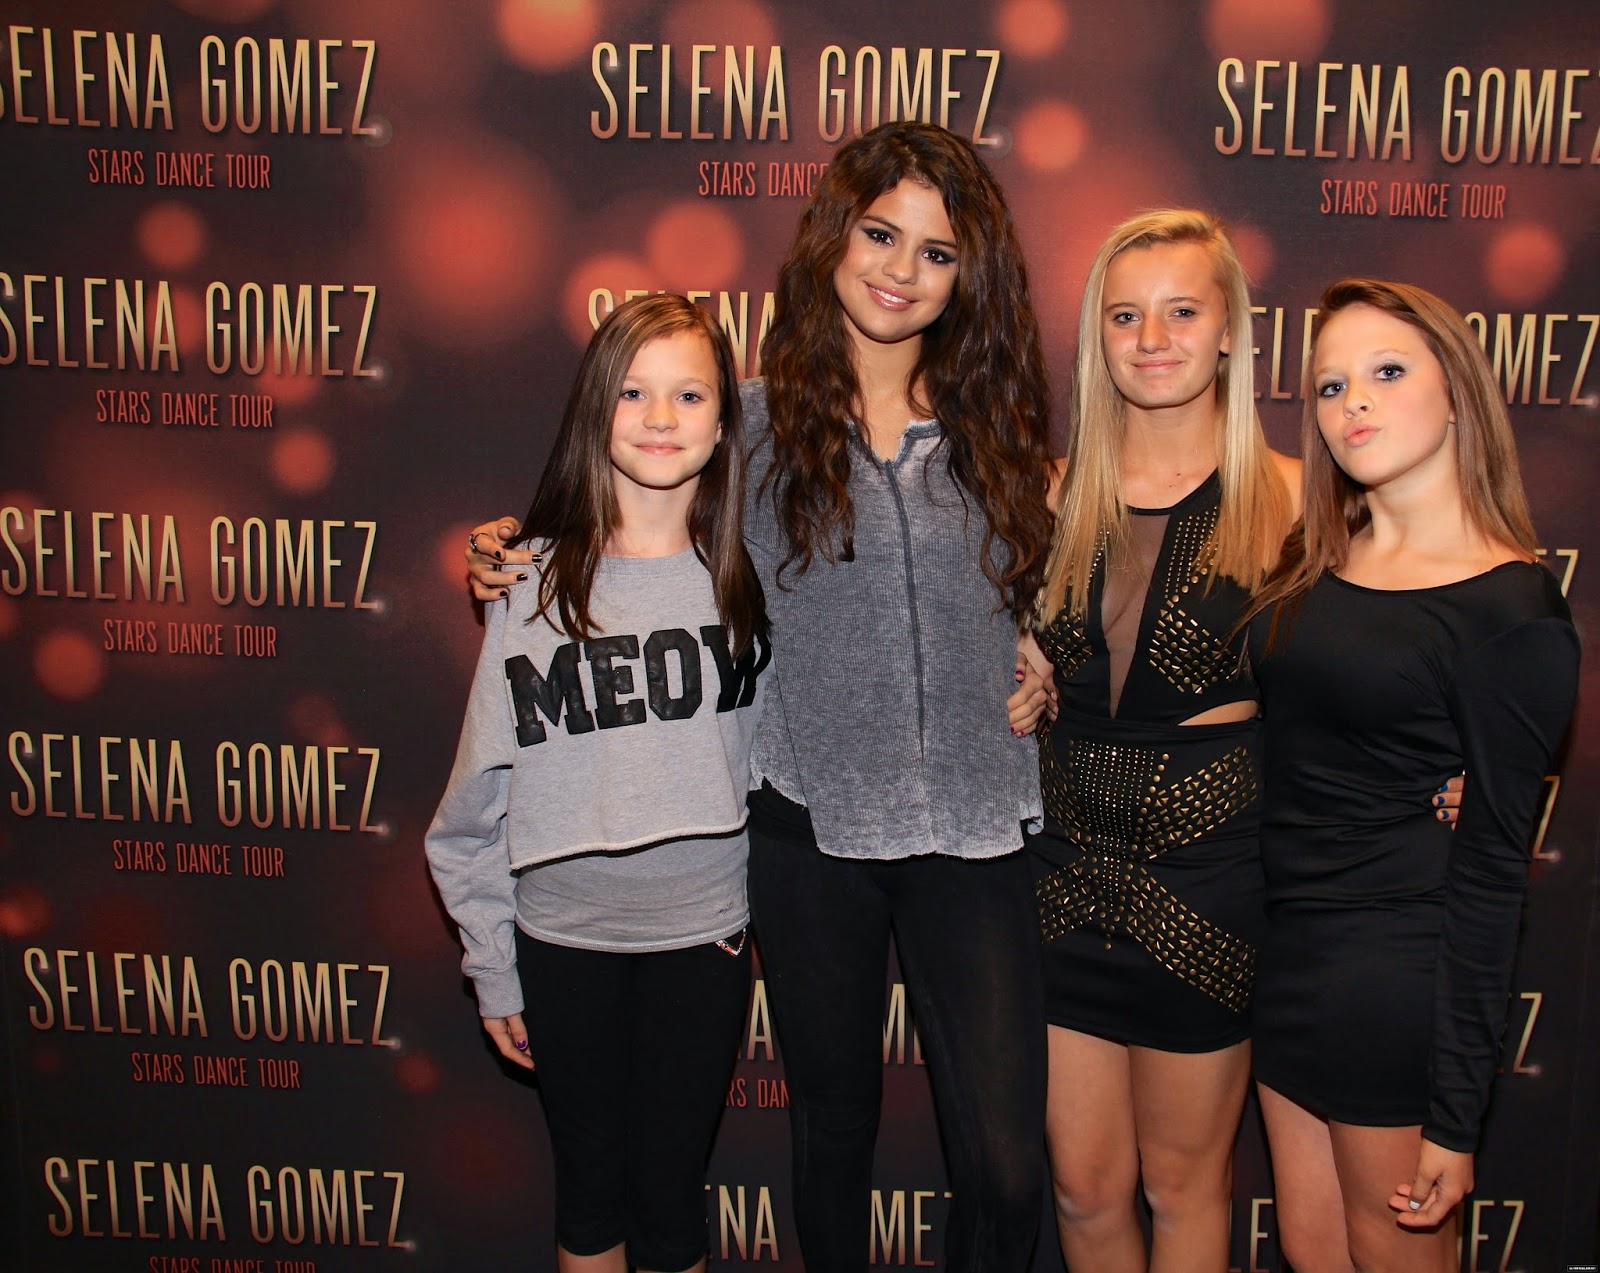 Selena gomez style stars dance world tour meet greet columbus stars dance world tour meet greet columbus ohio nov 23 2013 m4hsunfo